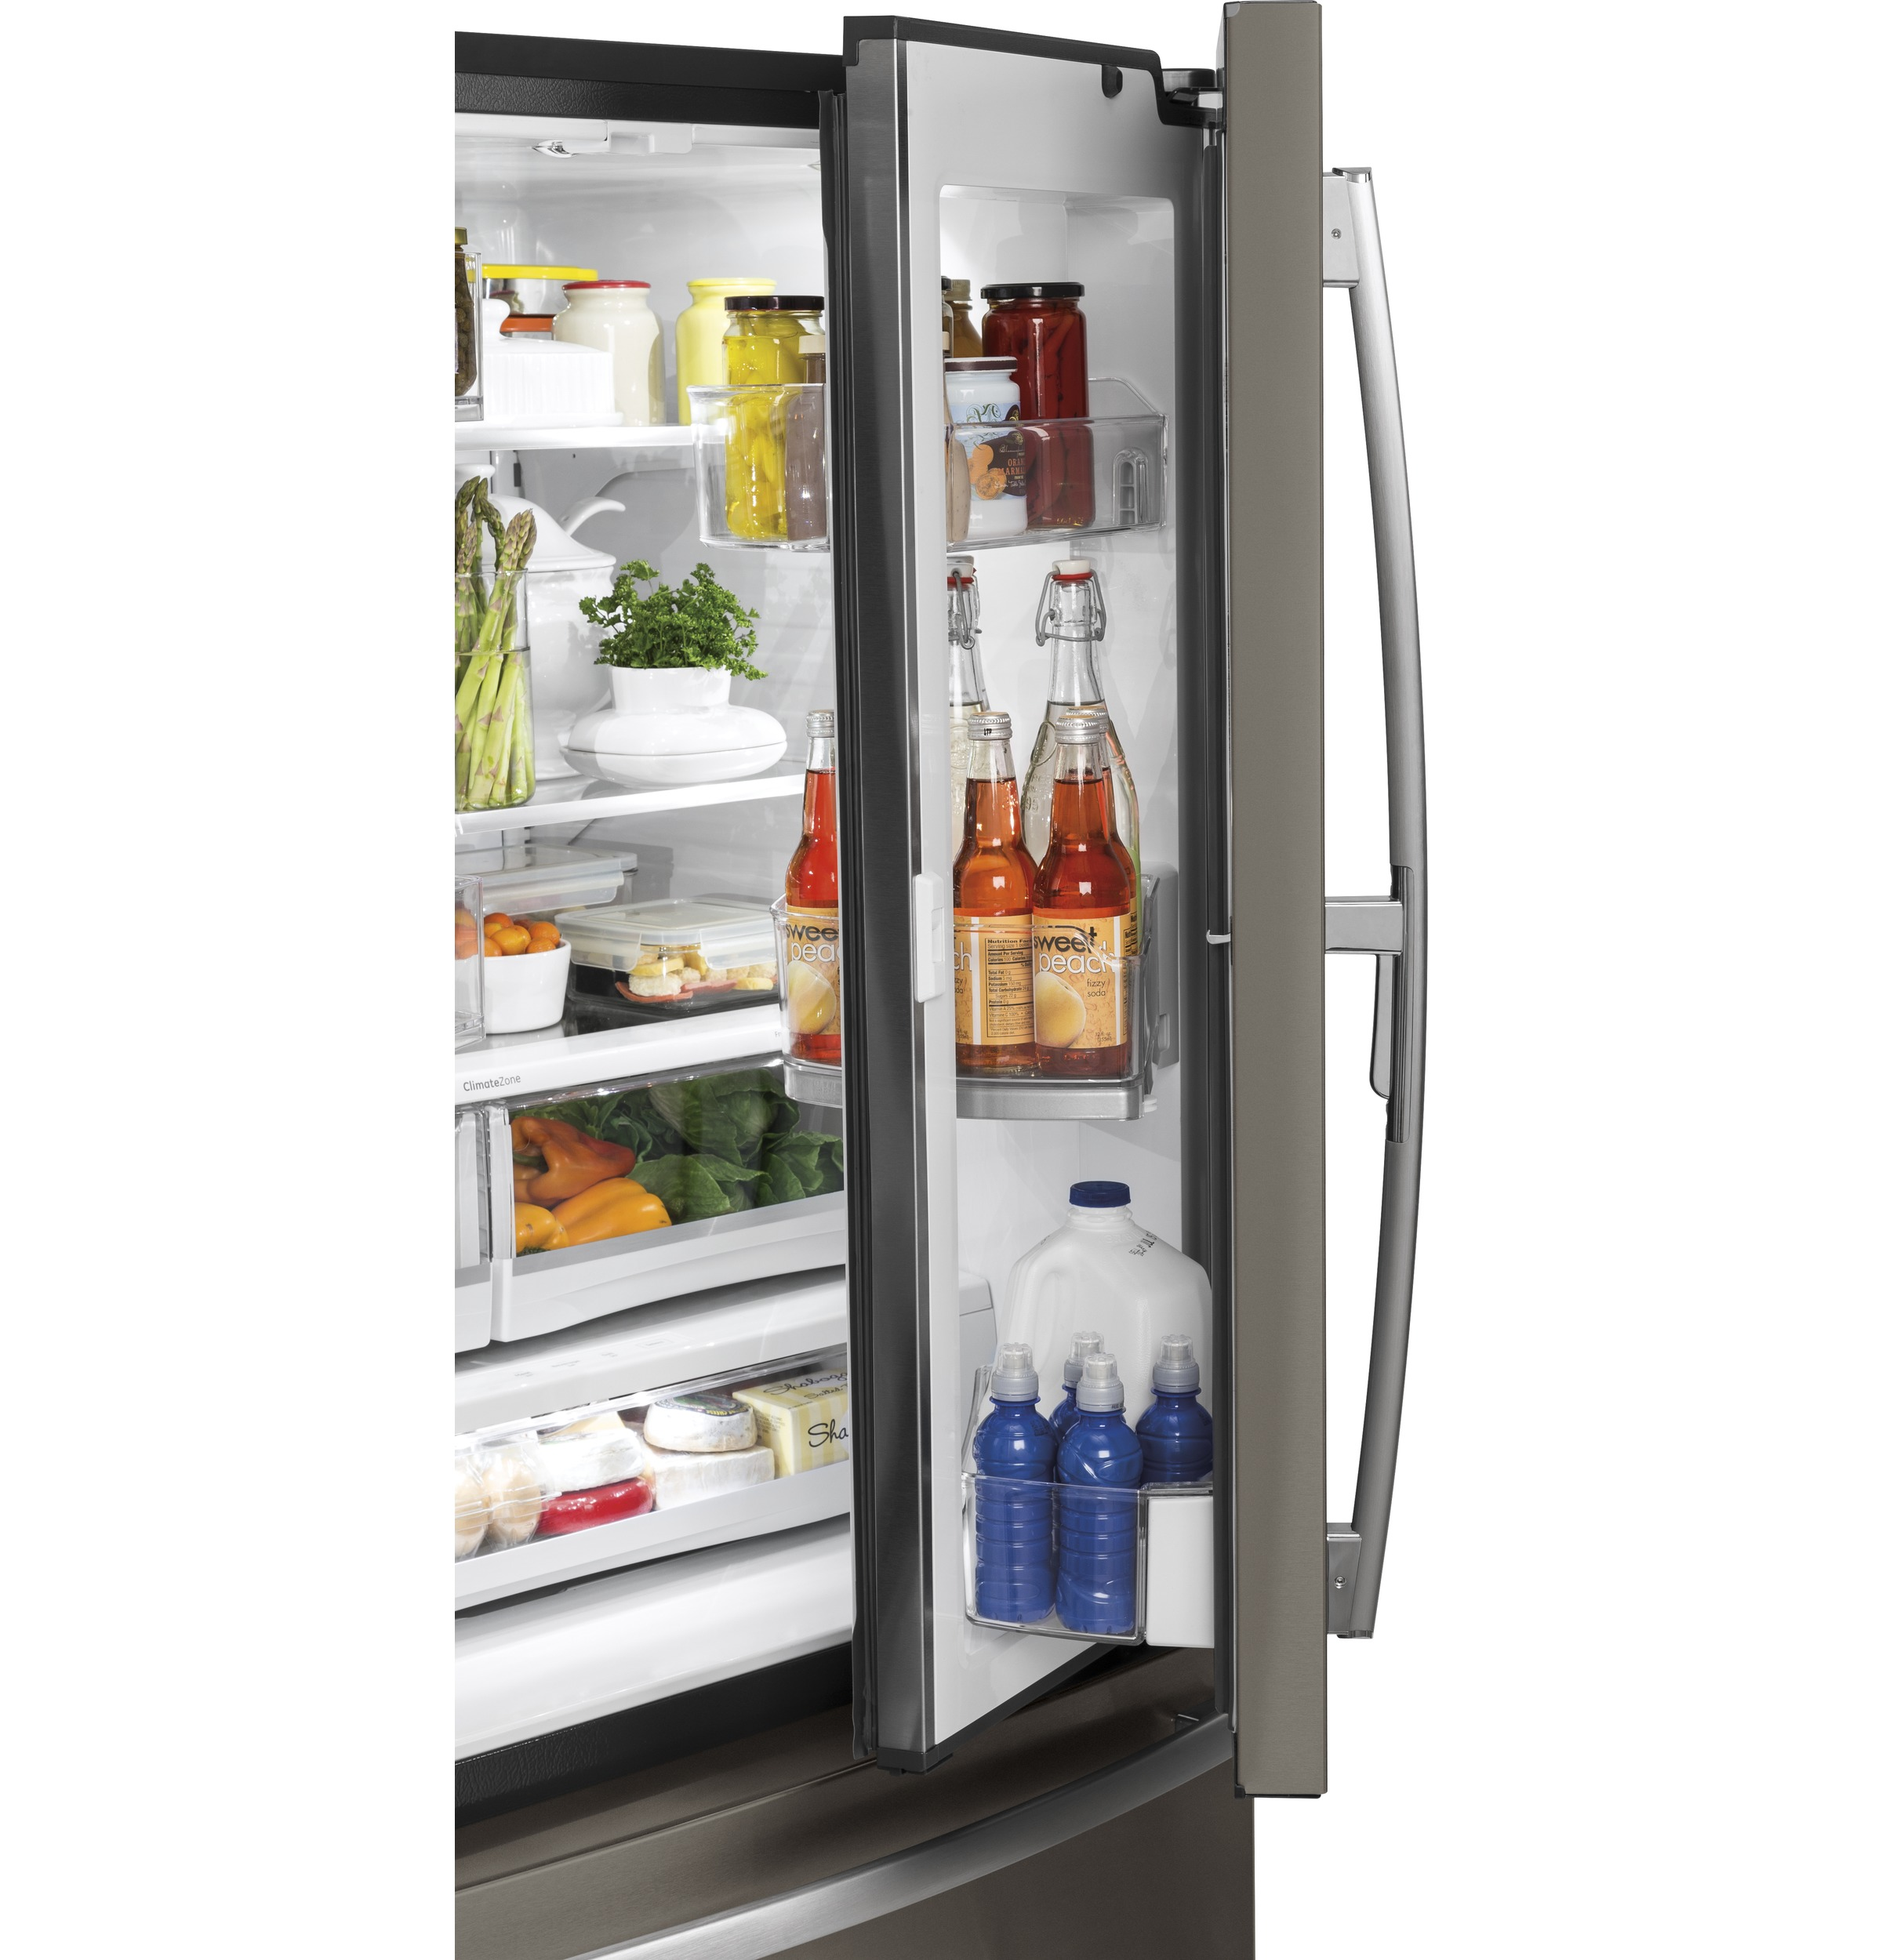 Model: GFD28GMLES | GE GE® 27.8 Cu. Ft. French-Door Refrigerator with Door In Door